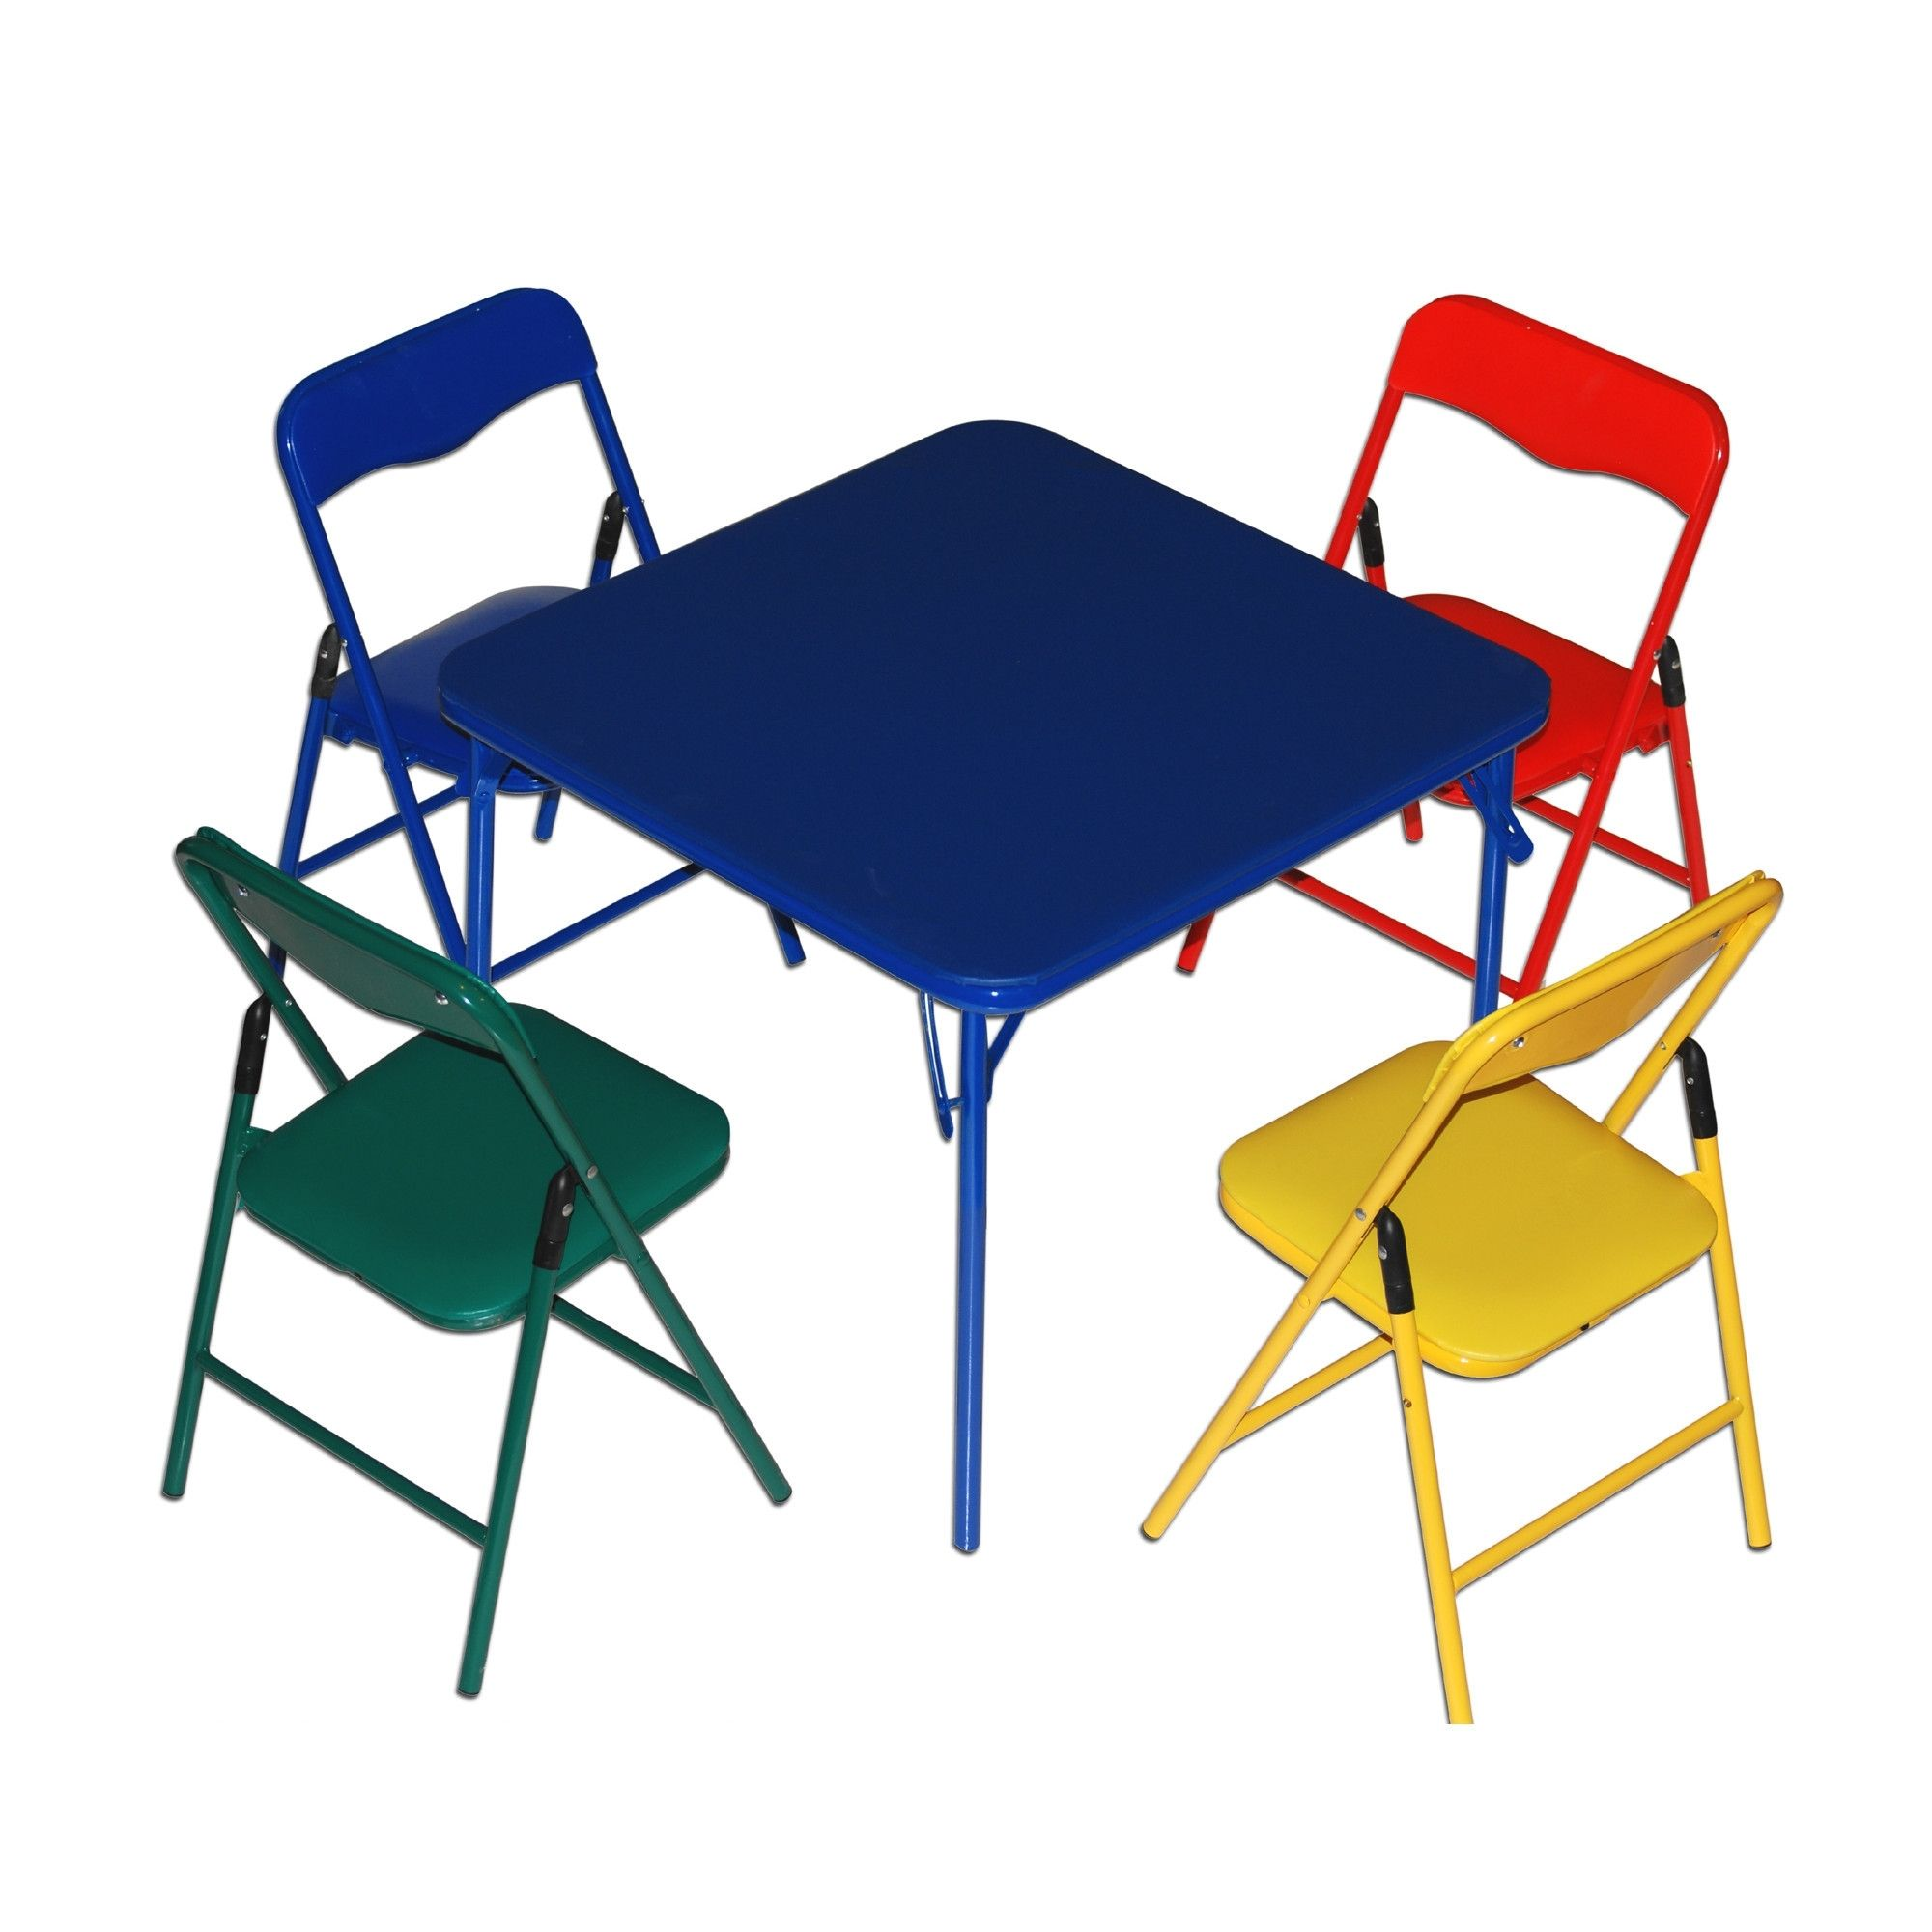 Childrens Folding Table And Chairs Children S Folding Table Folding Chairs Furniture Set By